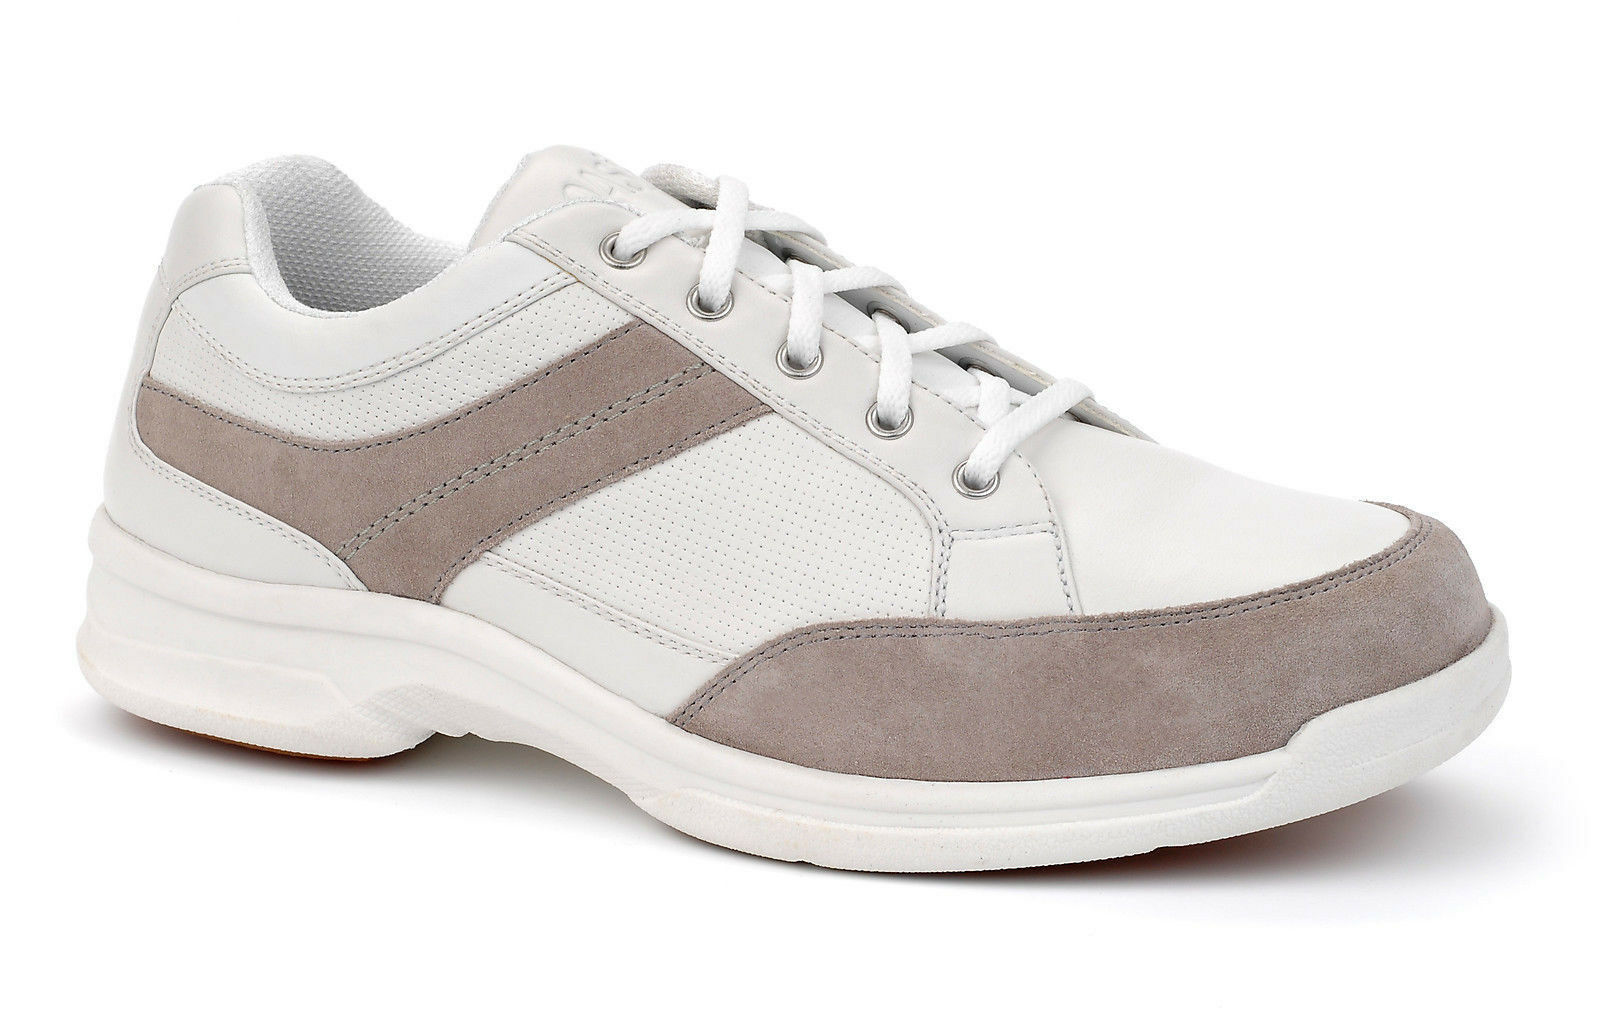 Oasis Jimmie Full Grain Leather Walking Shoe - Extra Depth & Orthotic-Friendly